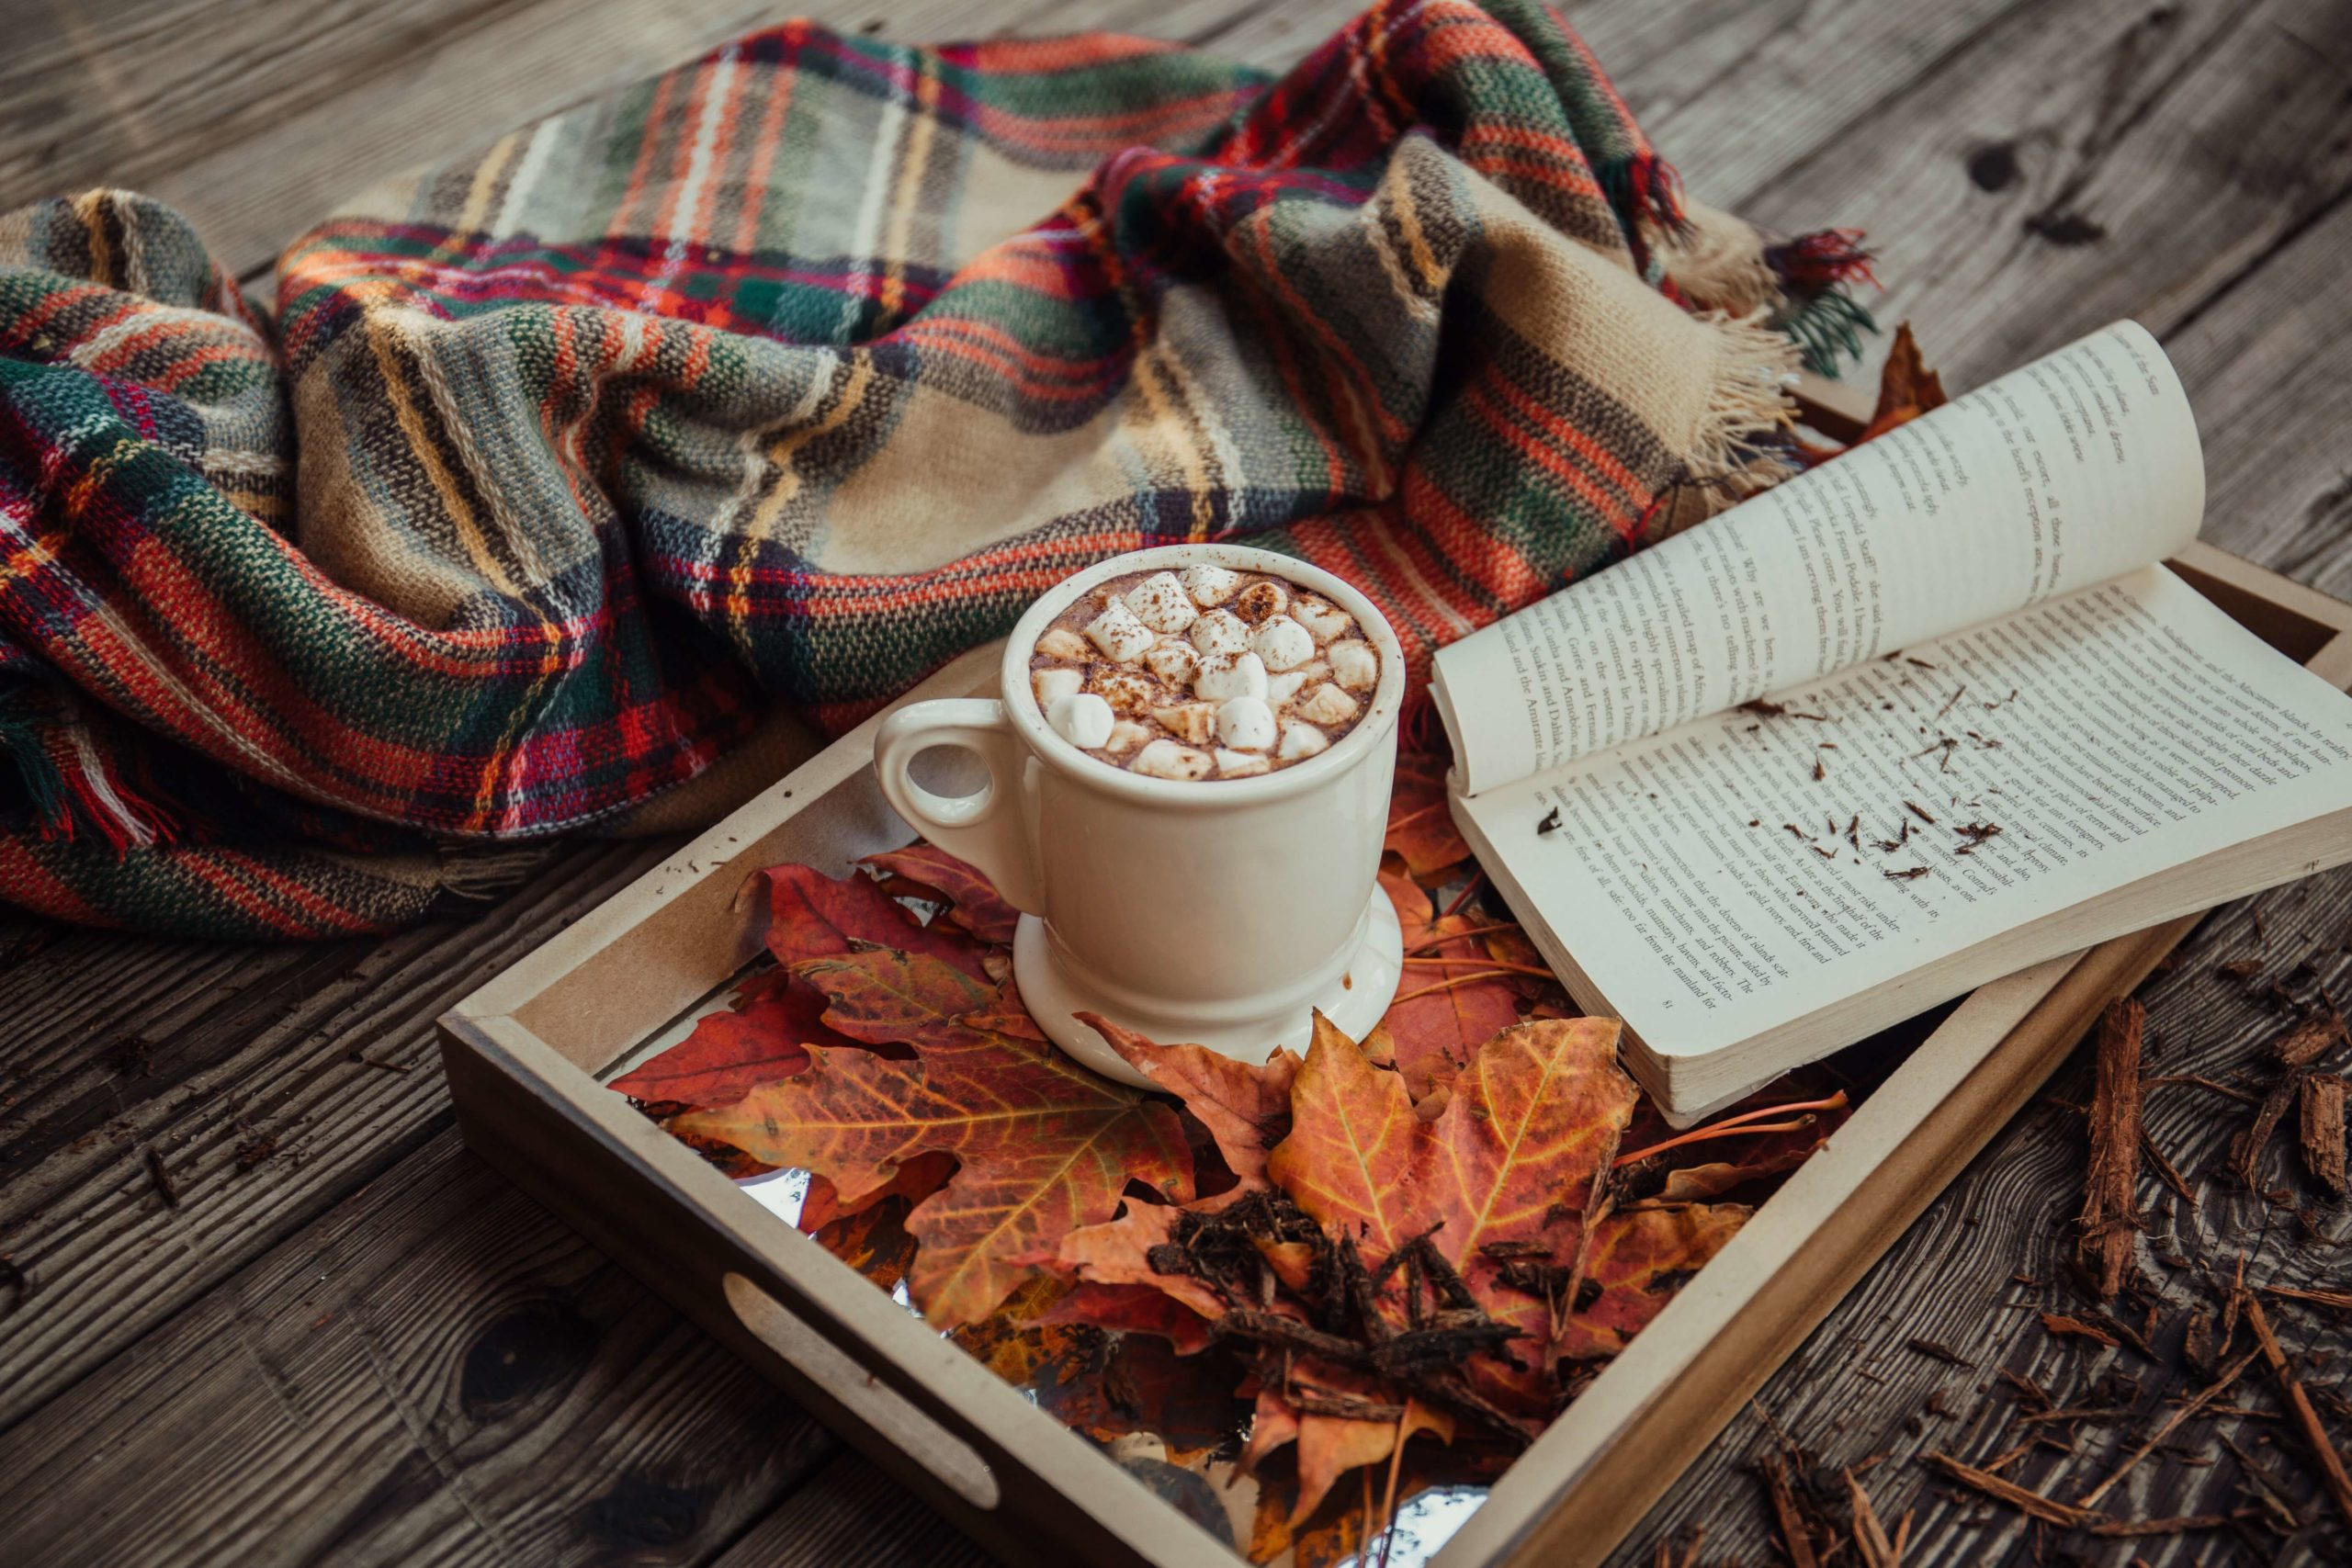 Hot chocolate with marshmallows comfort memories